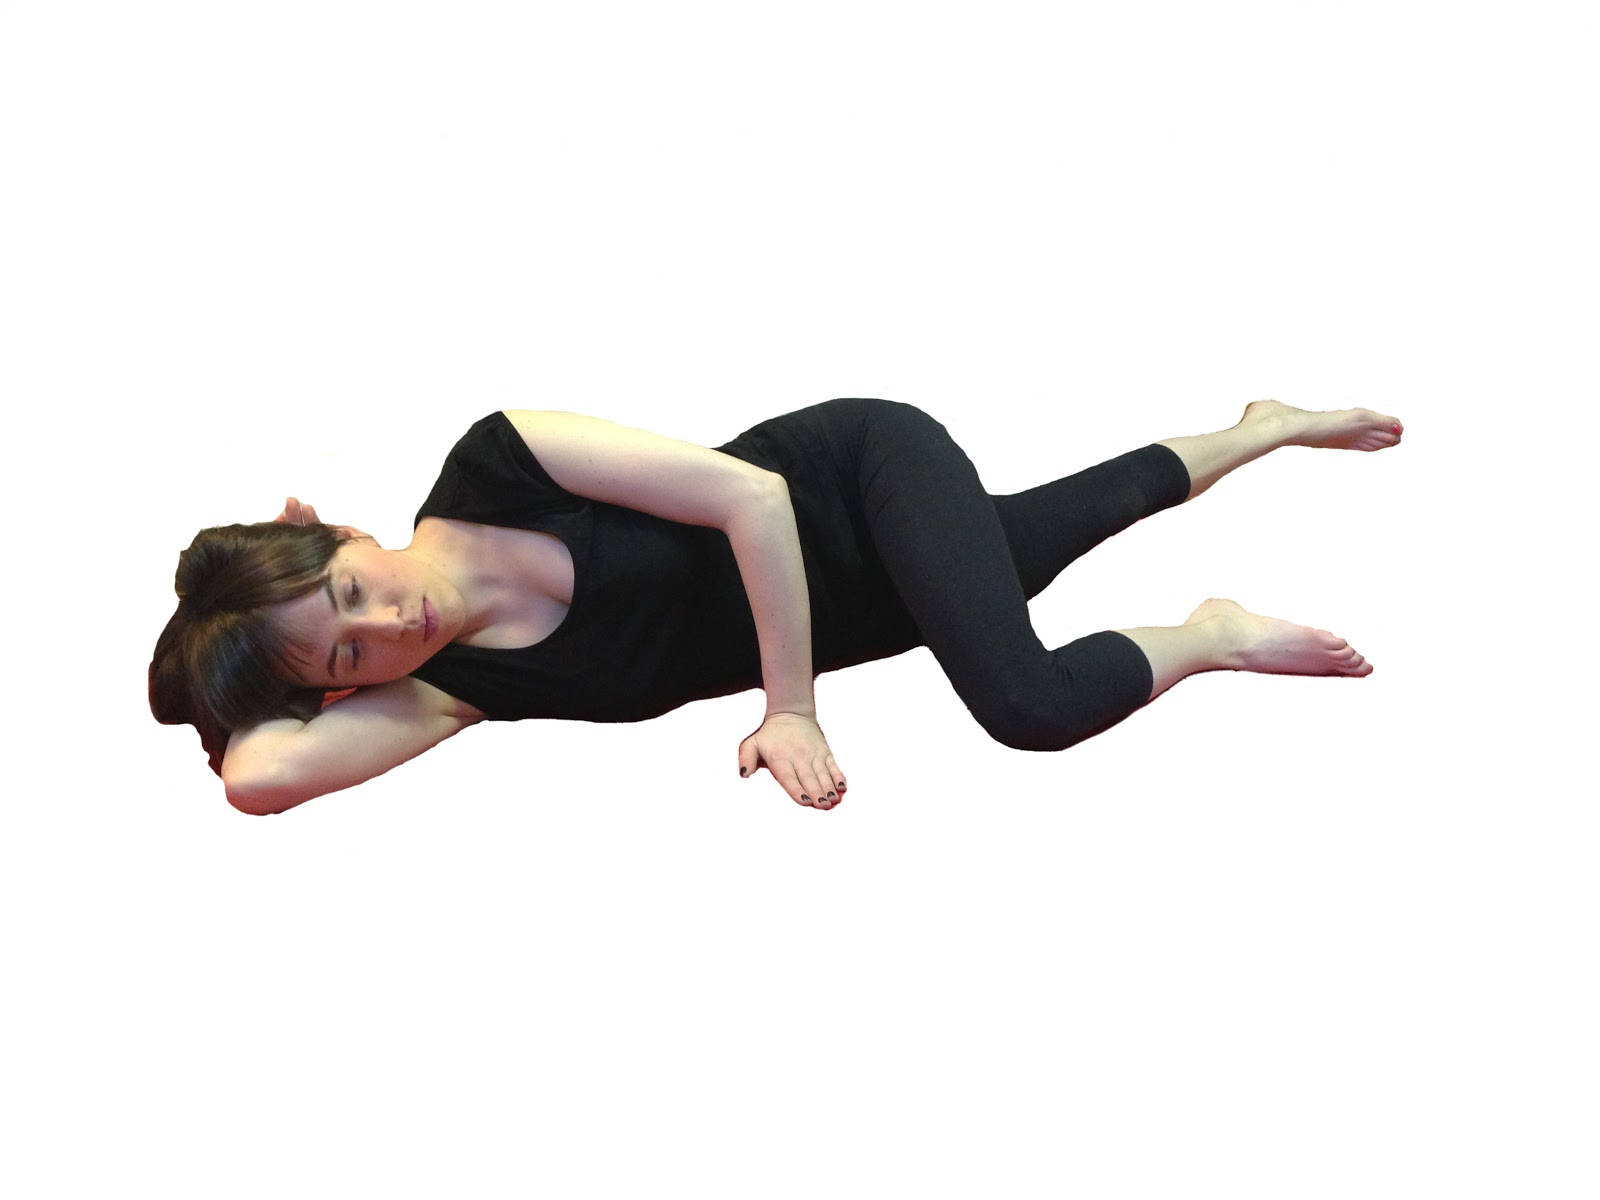 Exercise of the Day: Day 274- Inner Thigh Lift